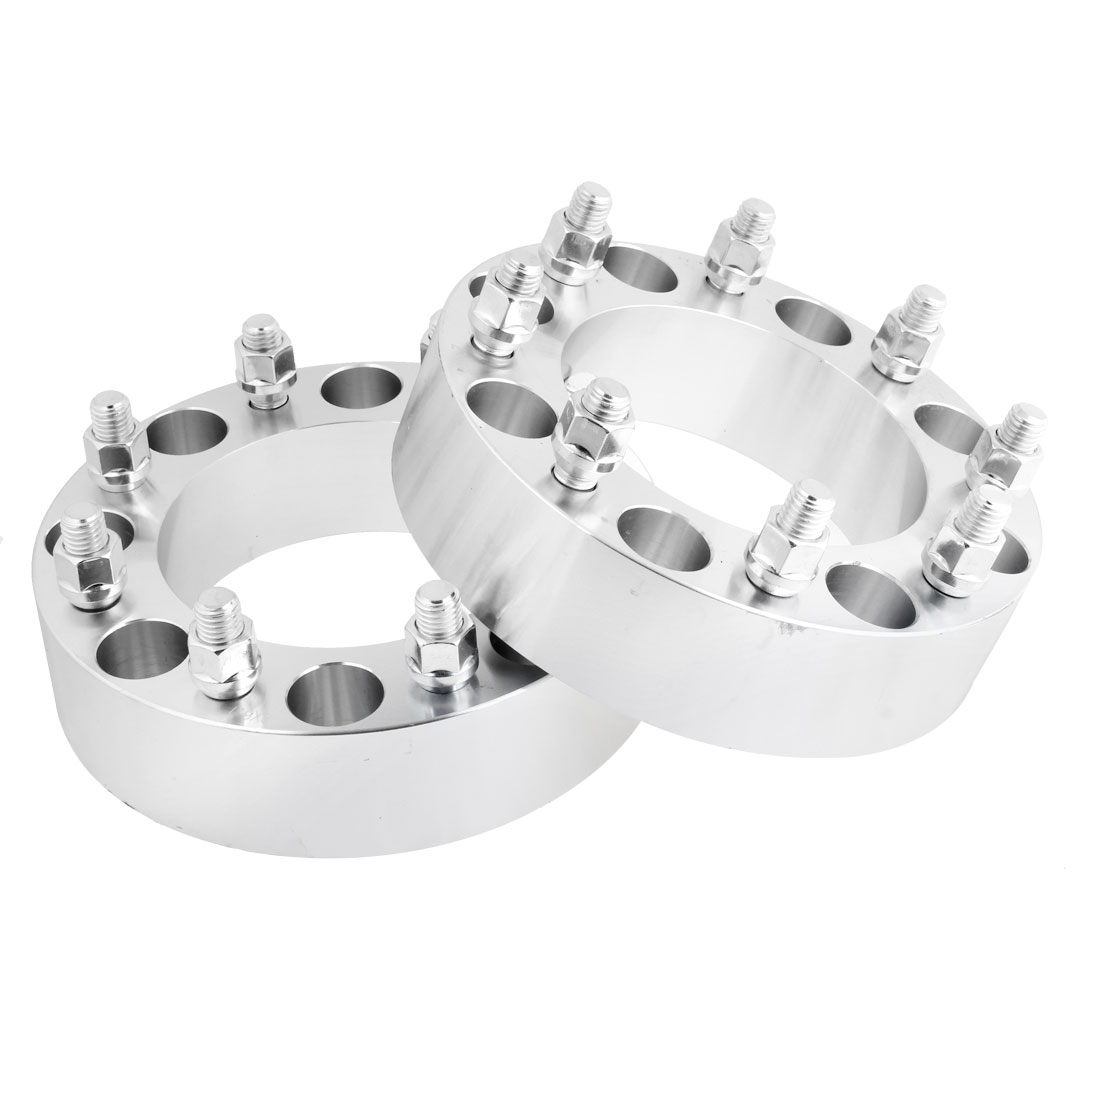 "2pcs 2.0"" Thickness Wheel Spacers 8x6.7"" Adapters 8 Lug 14x2.0mm Studs for Ford"